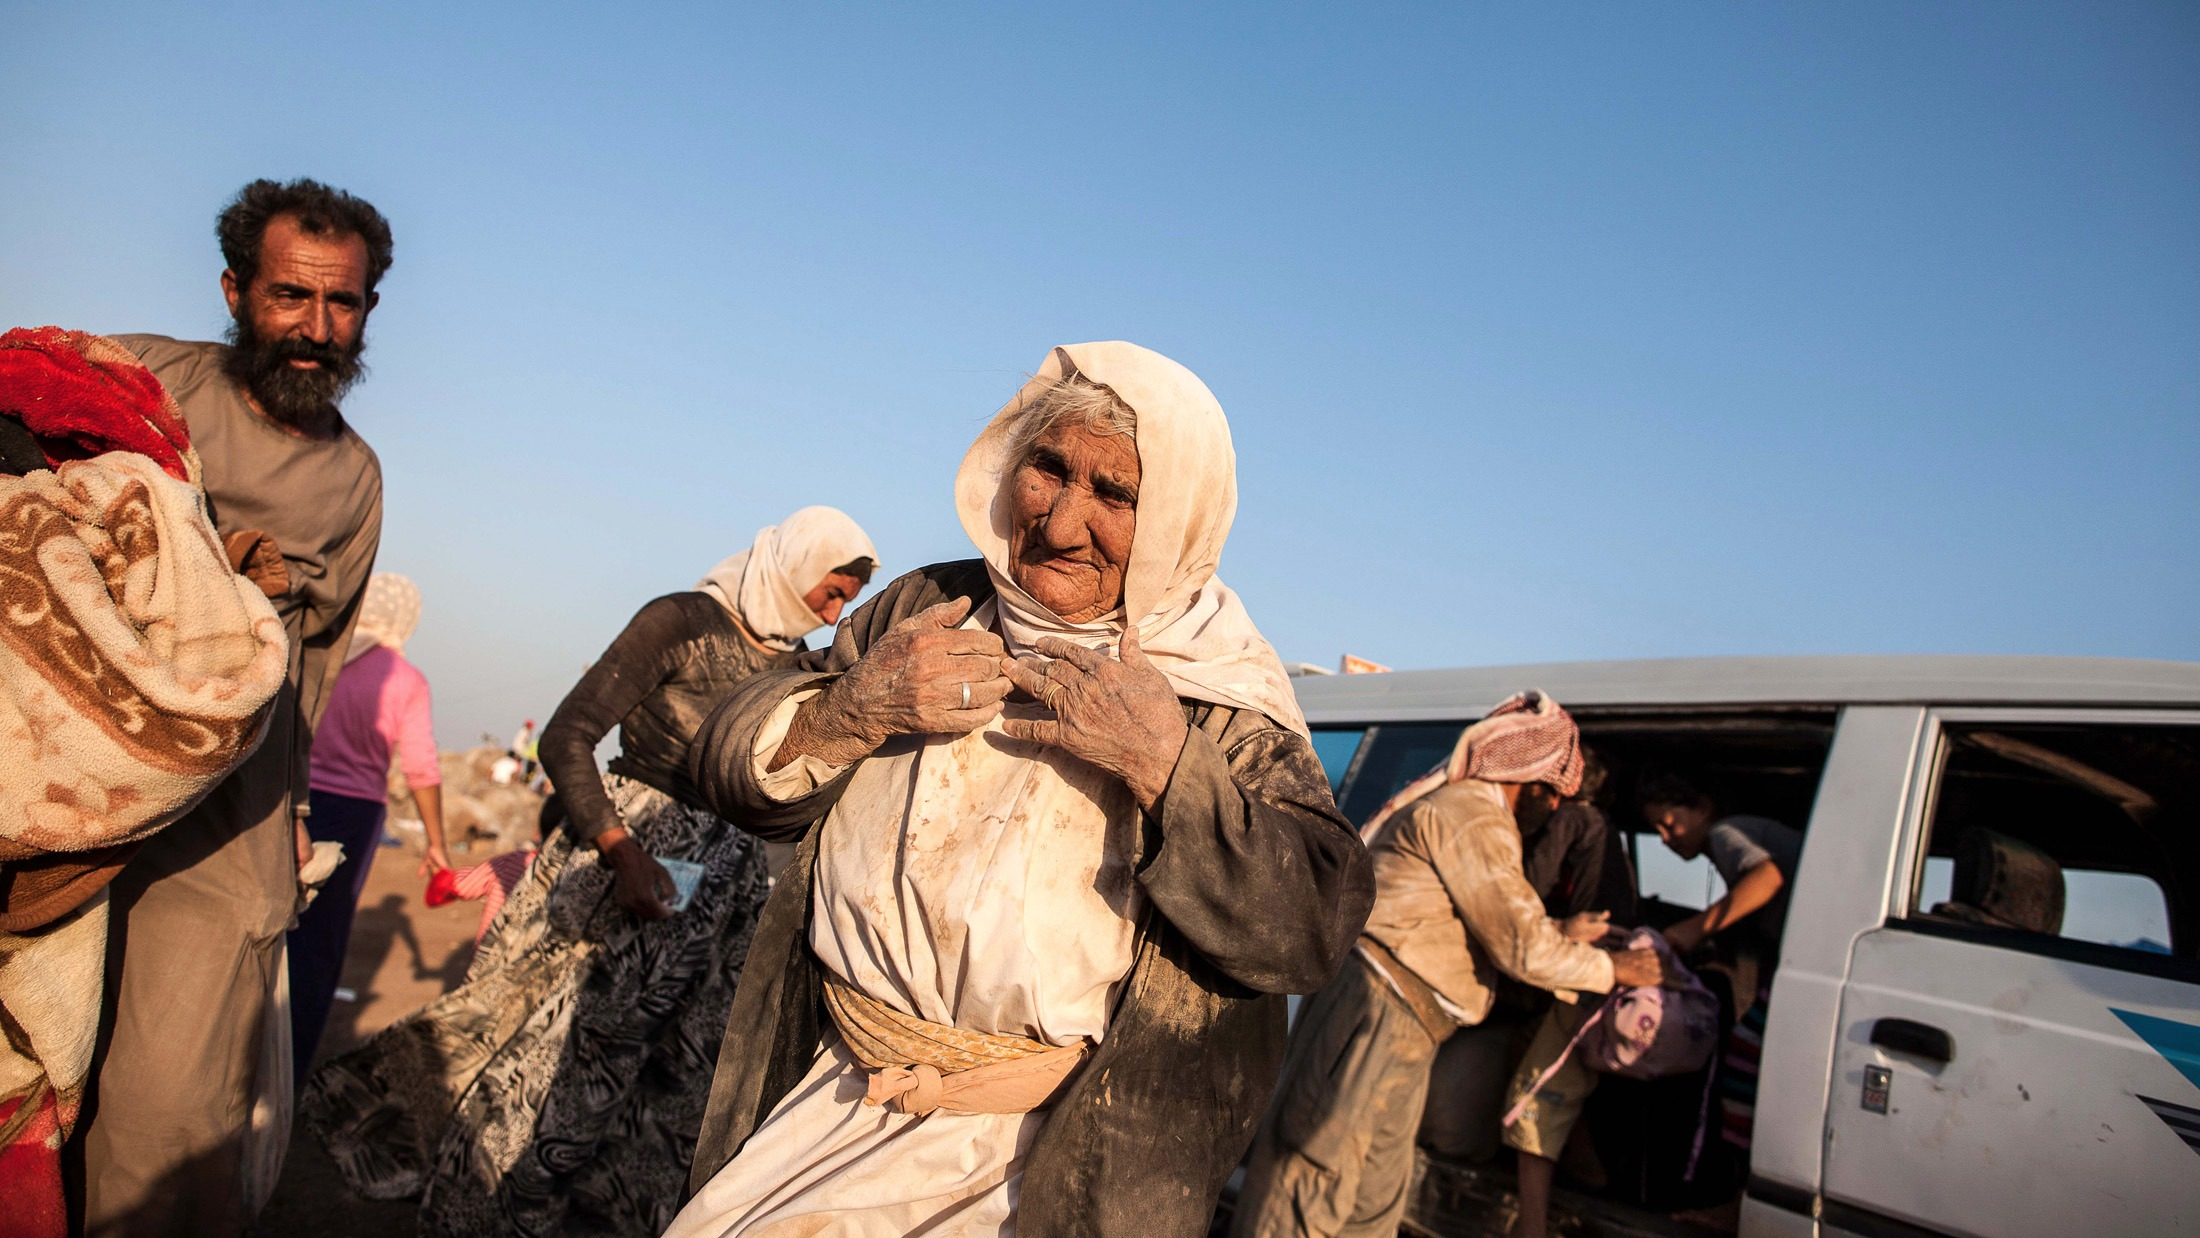 An elderly Yazidi woman arrives with her family into Newroz refugee camp, situated next to the town of al-Malikyah in Rojava, Syria